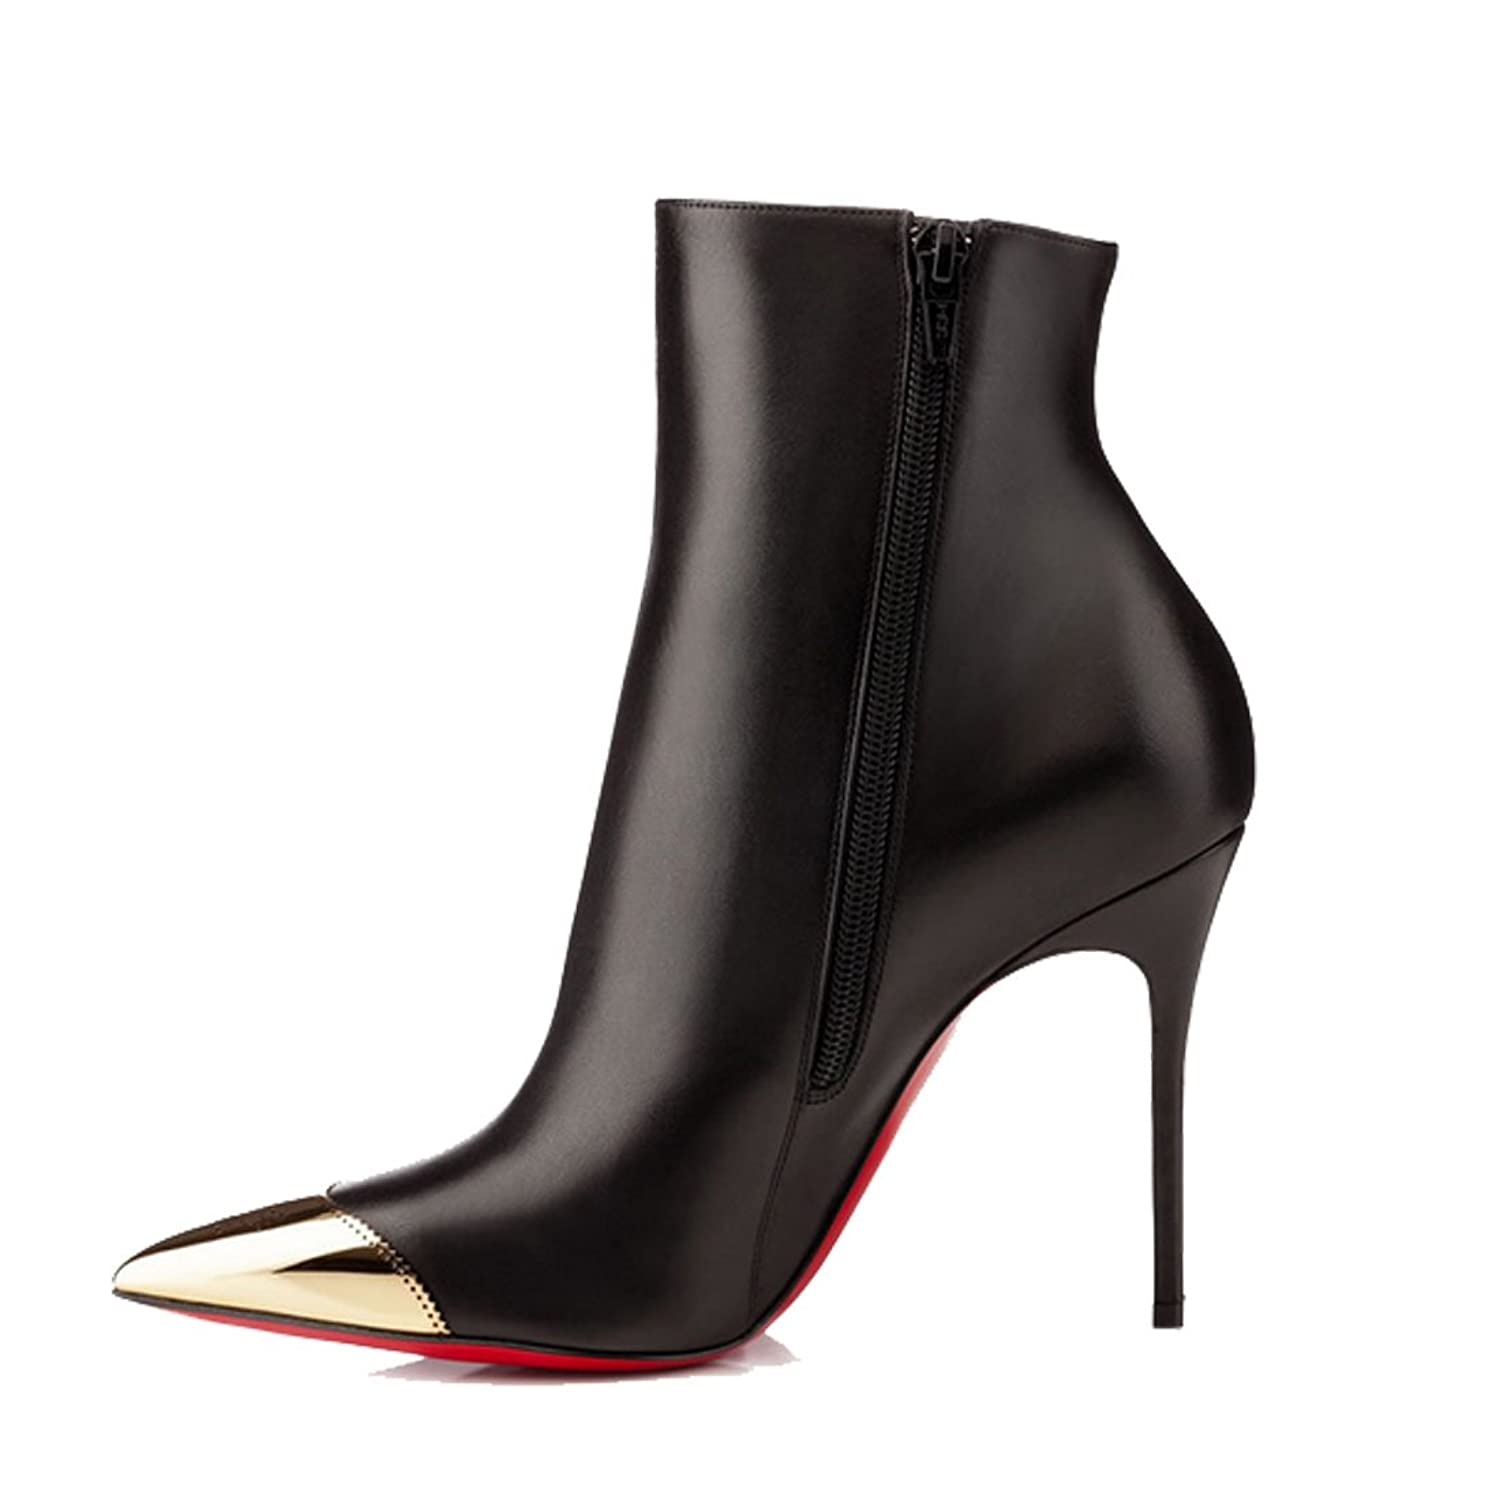 San Hojas Leather Ankle Boots Black